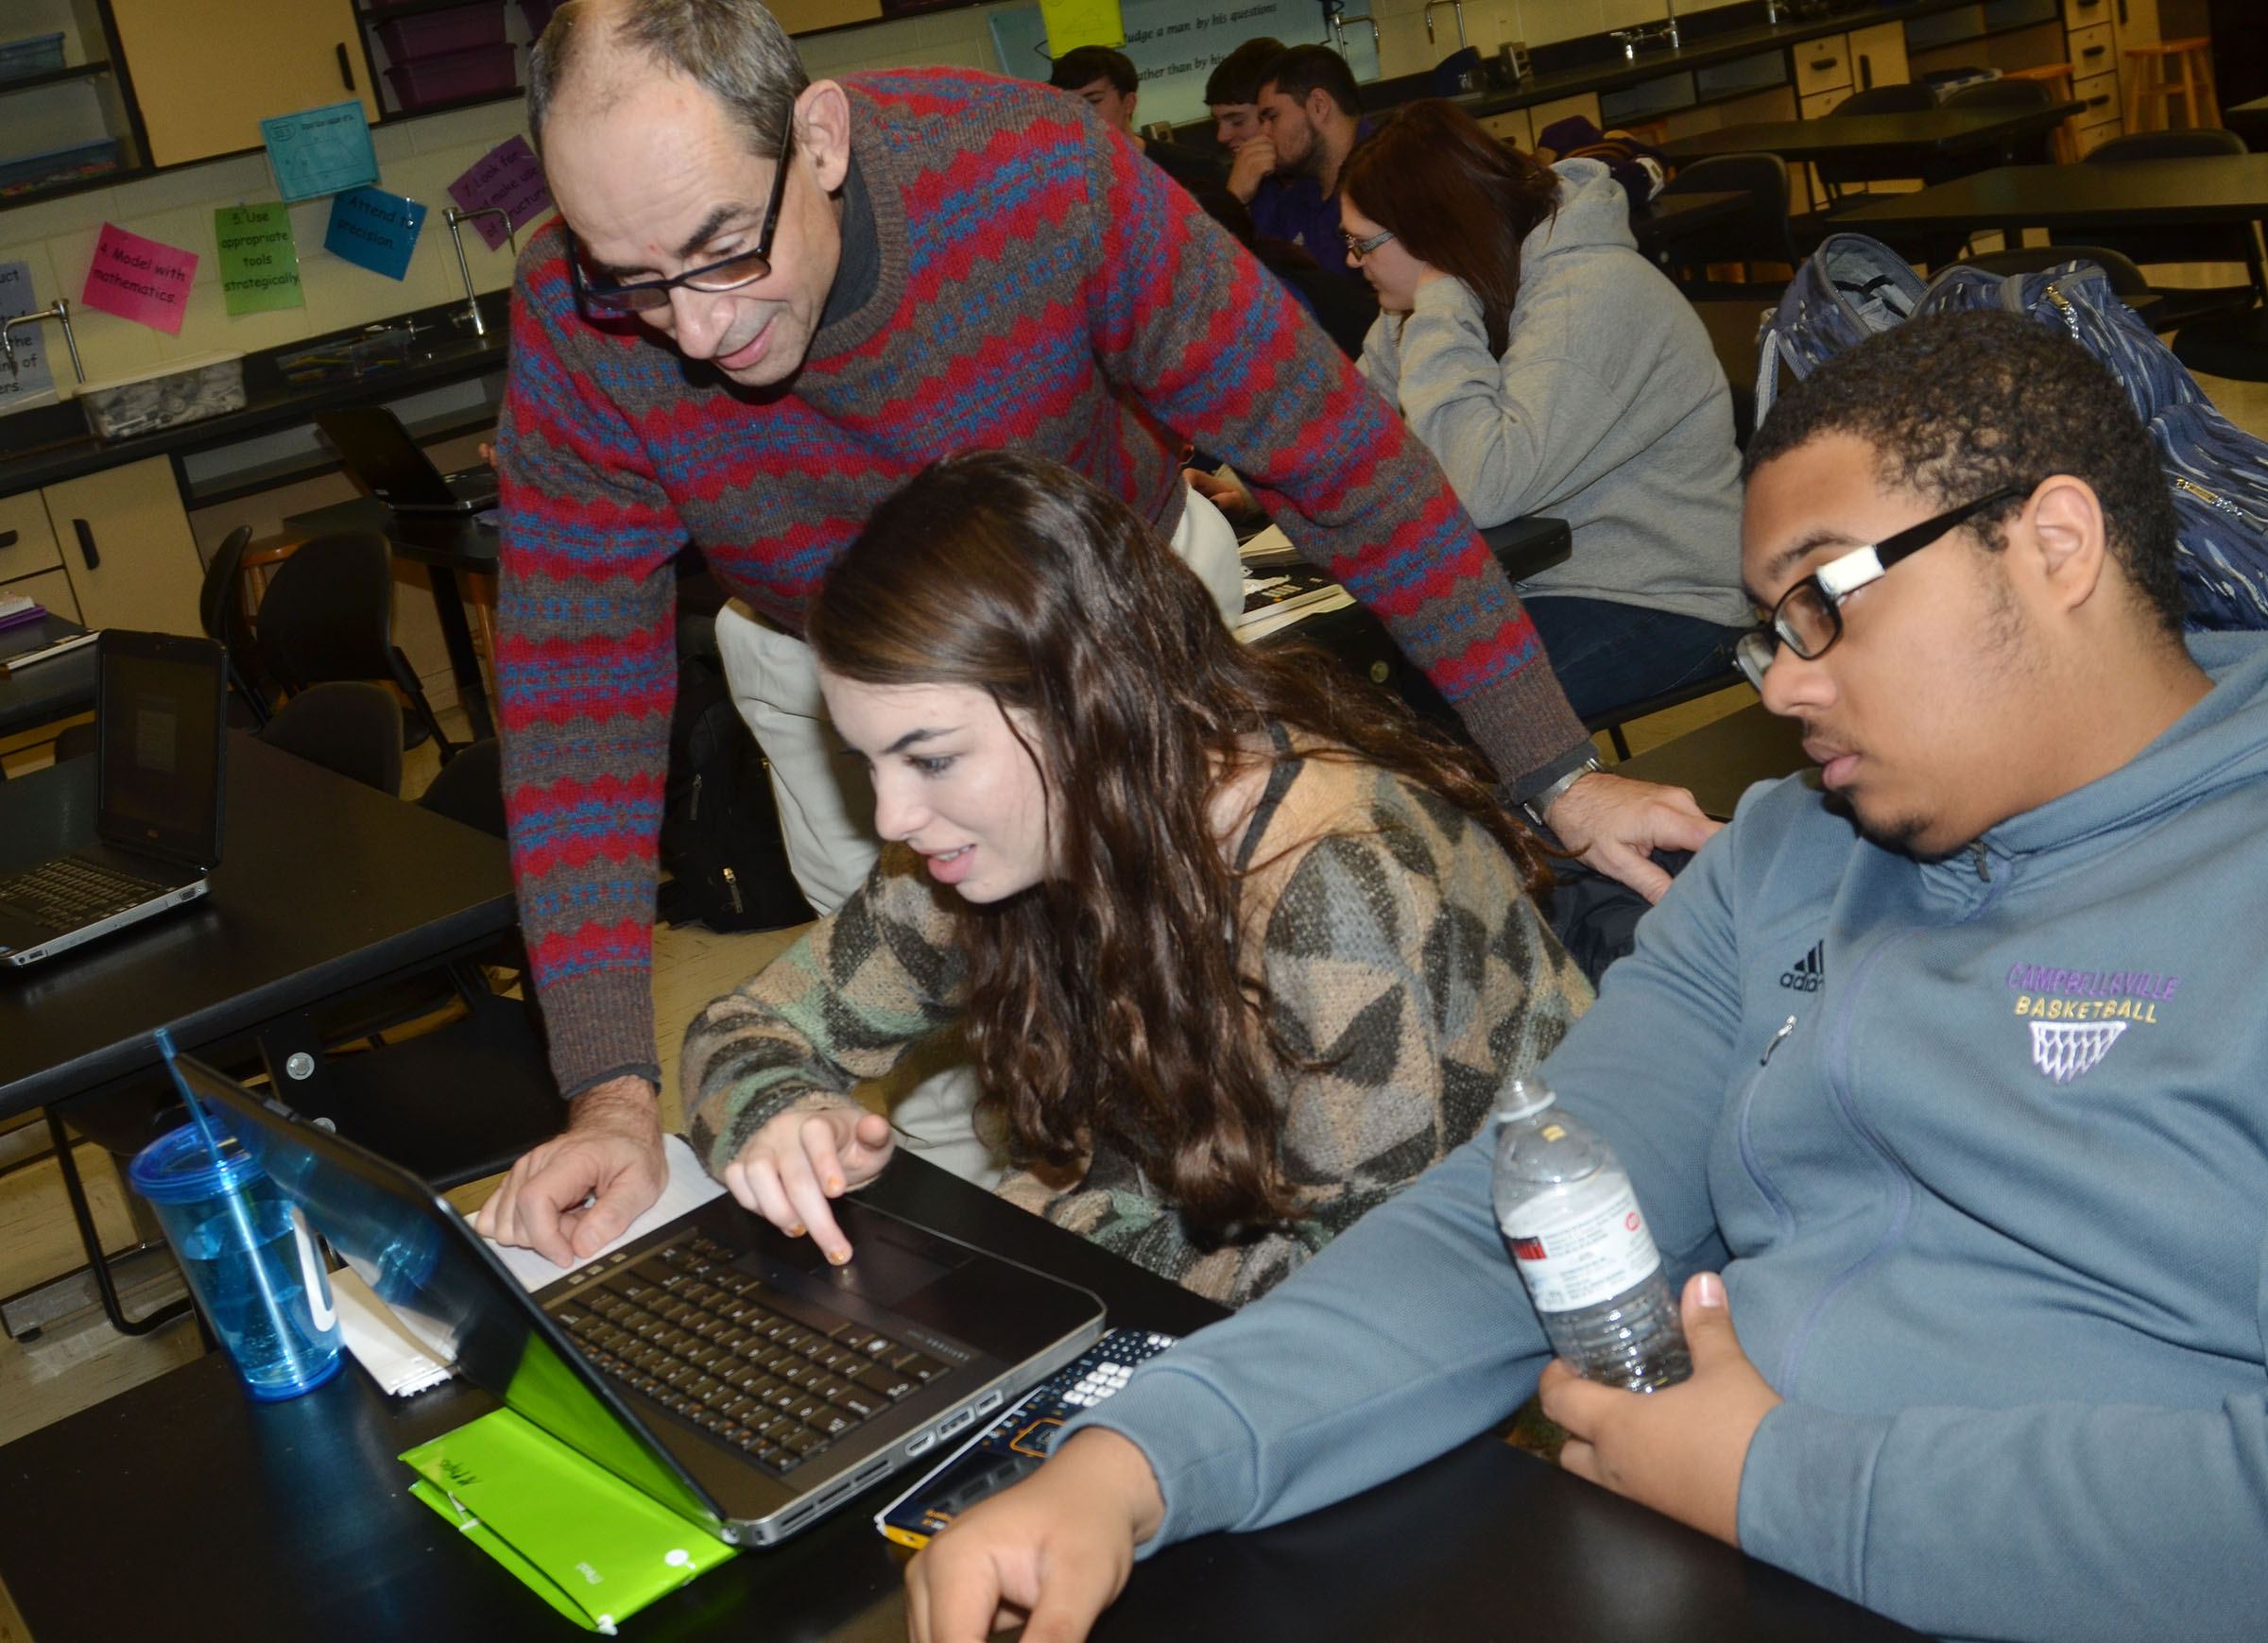 Lew Acampora, senior science director with AdvanceKentucky, helps CHS seniors Laura Lamb and Ricky Smith-Cecil use the Logger Pro software.